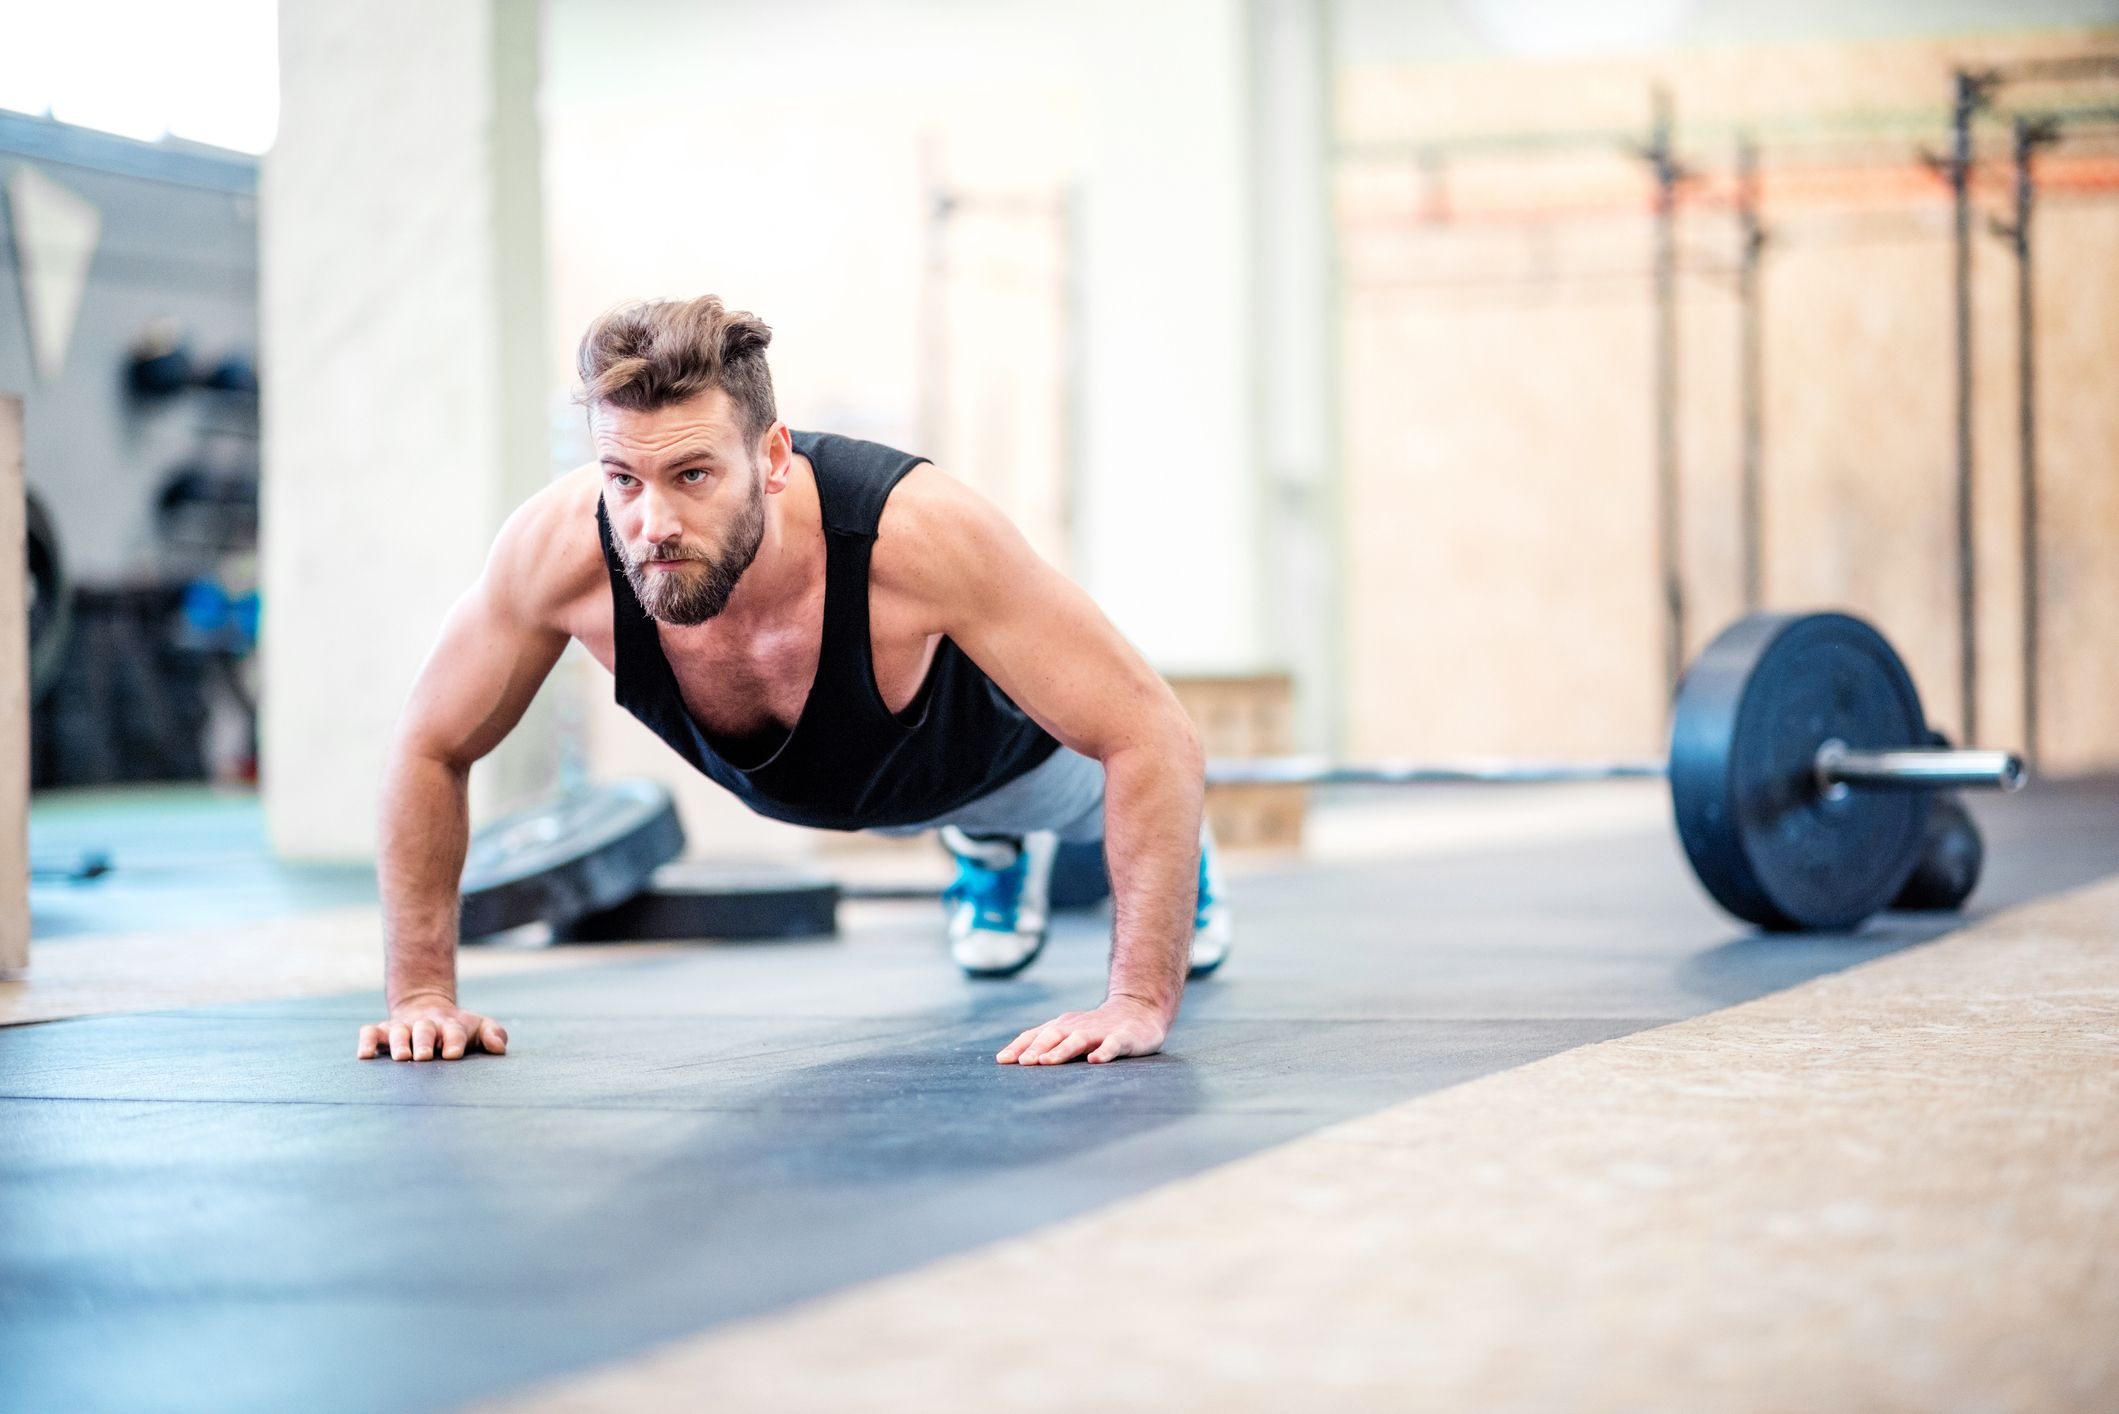 How Many Push-Ups Can You Bang Out? The Number Means a Lot for Your Health